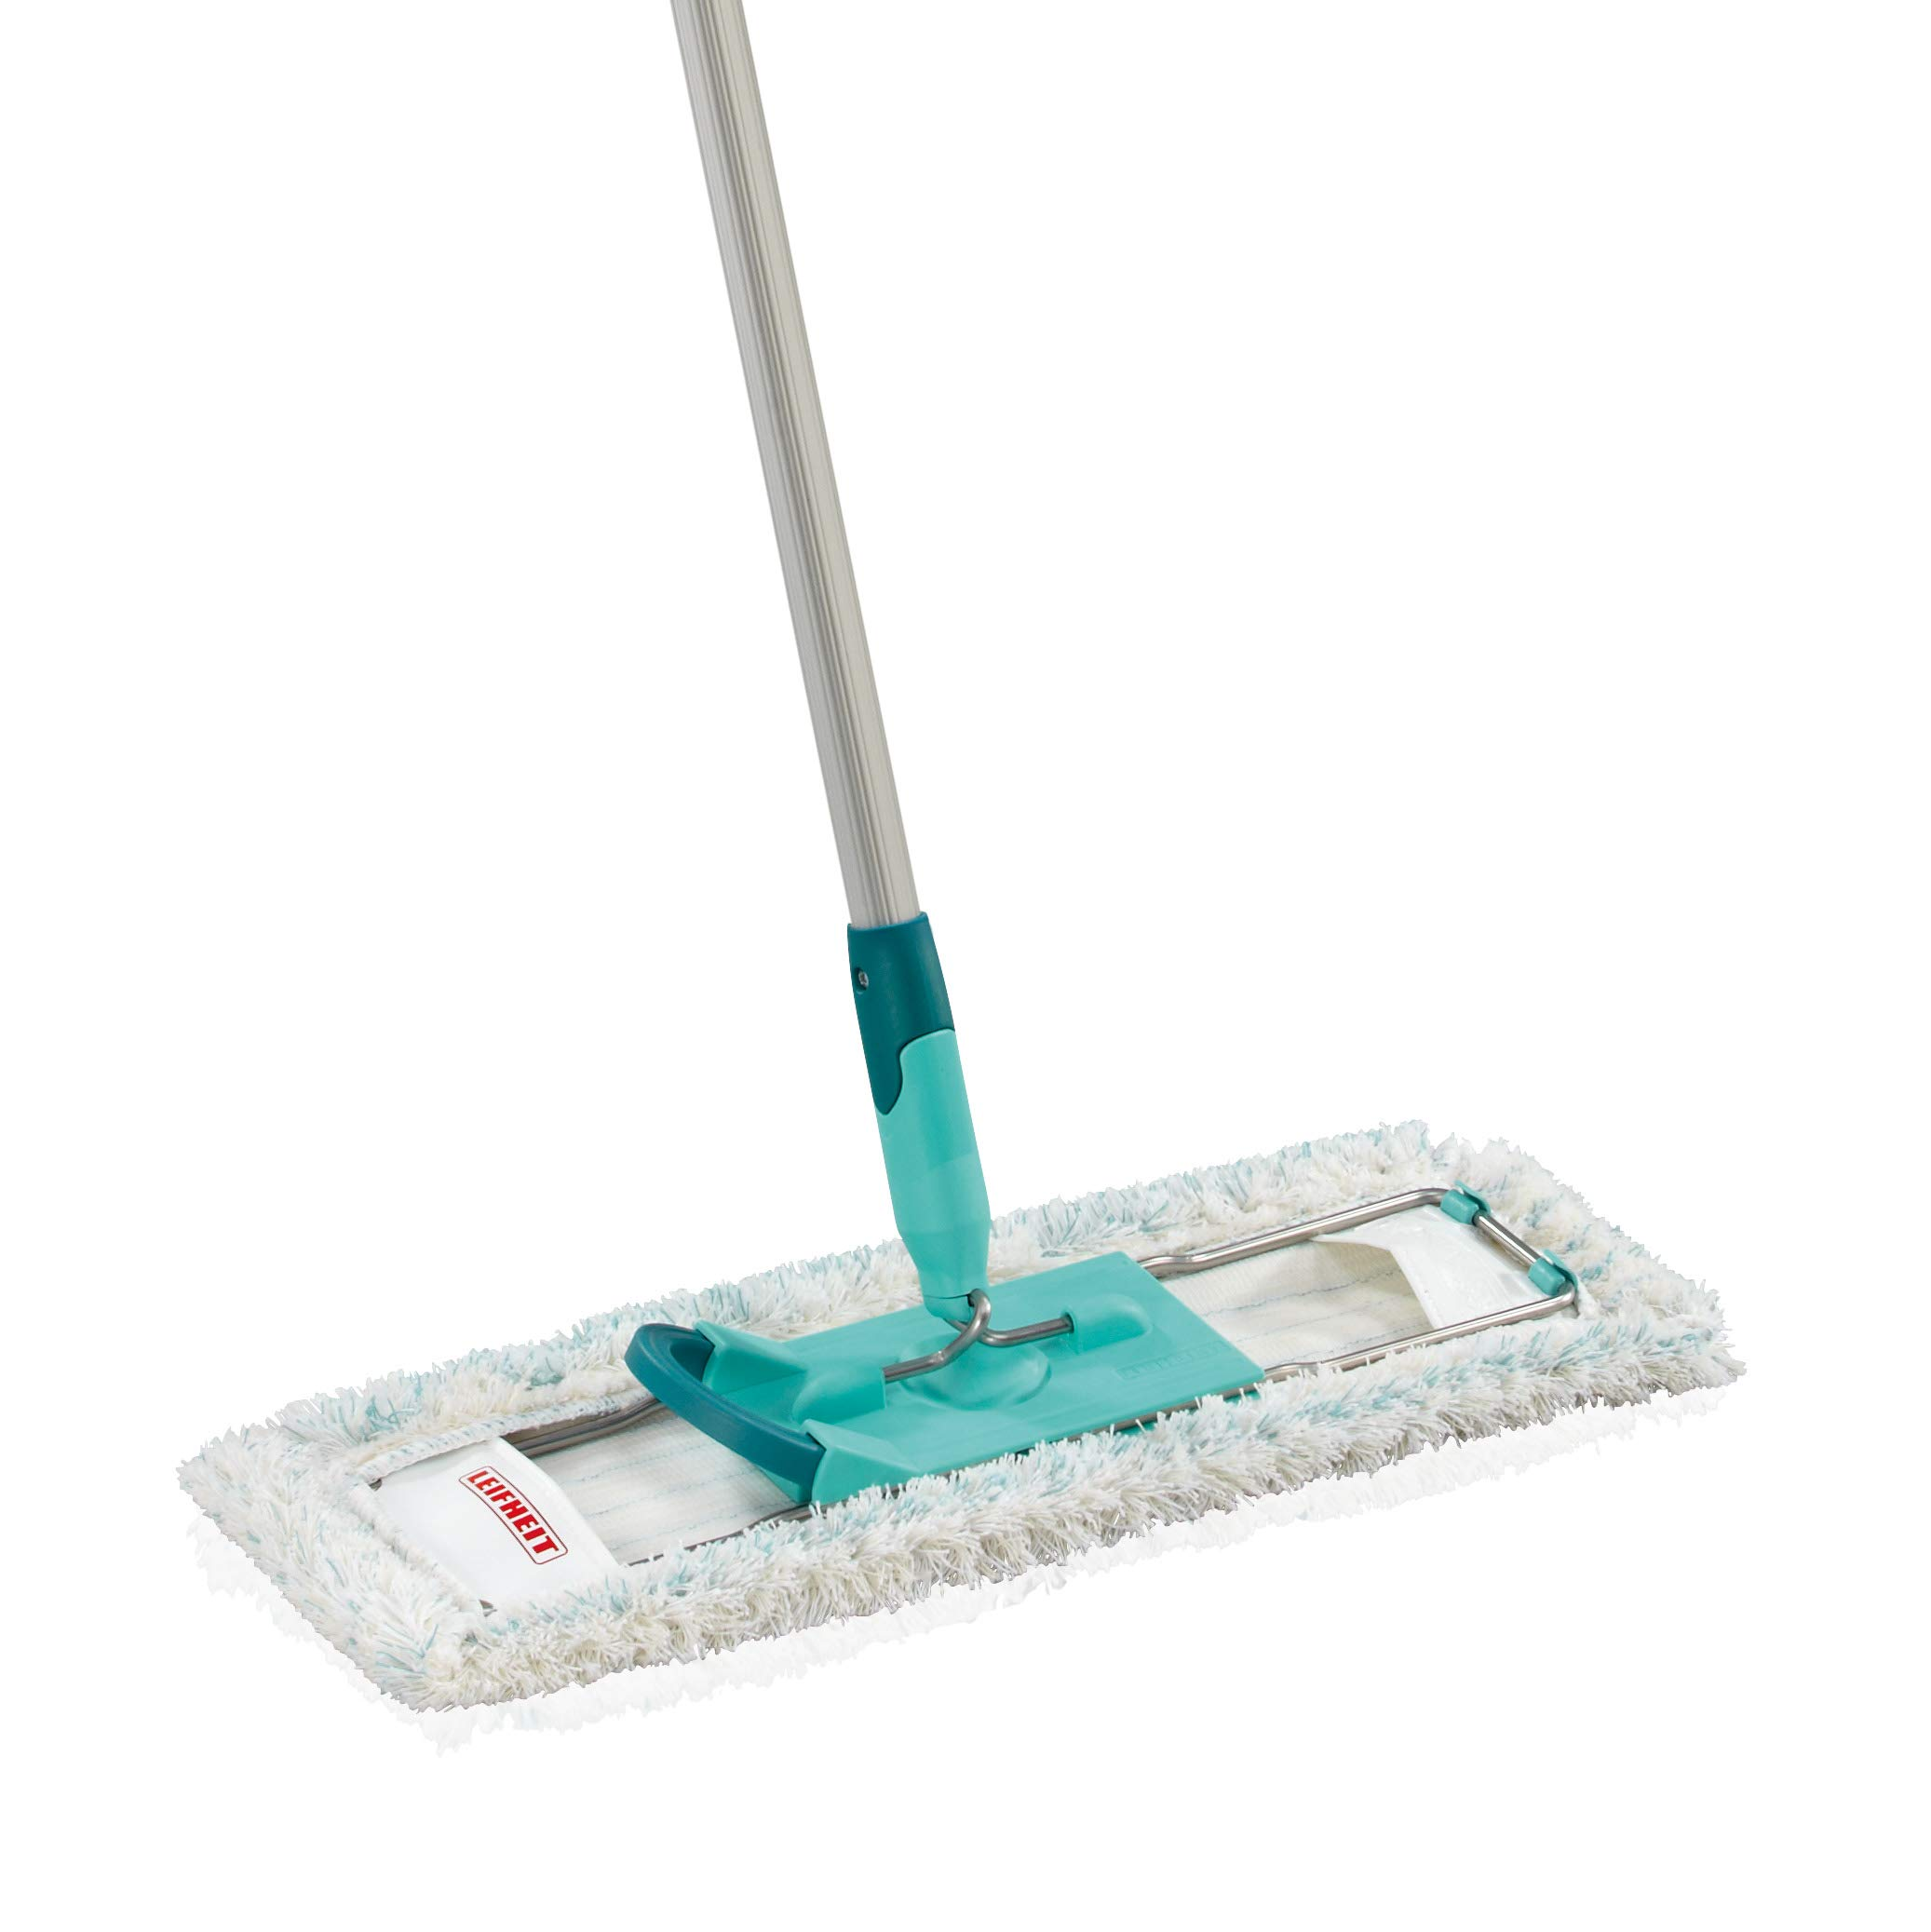 Leifheit Profi Cotton Plus Floor Wiper with Aluminium Handle, Mop, 55020 by Leifheit (Image #1)